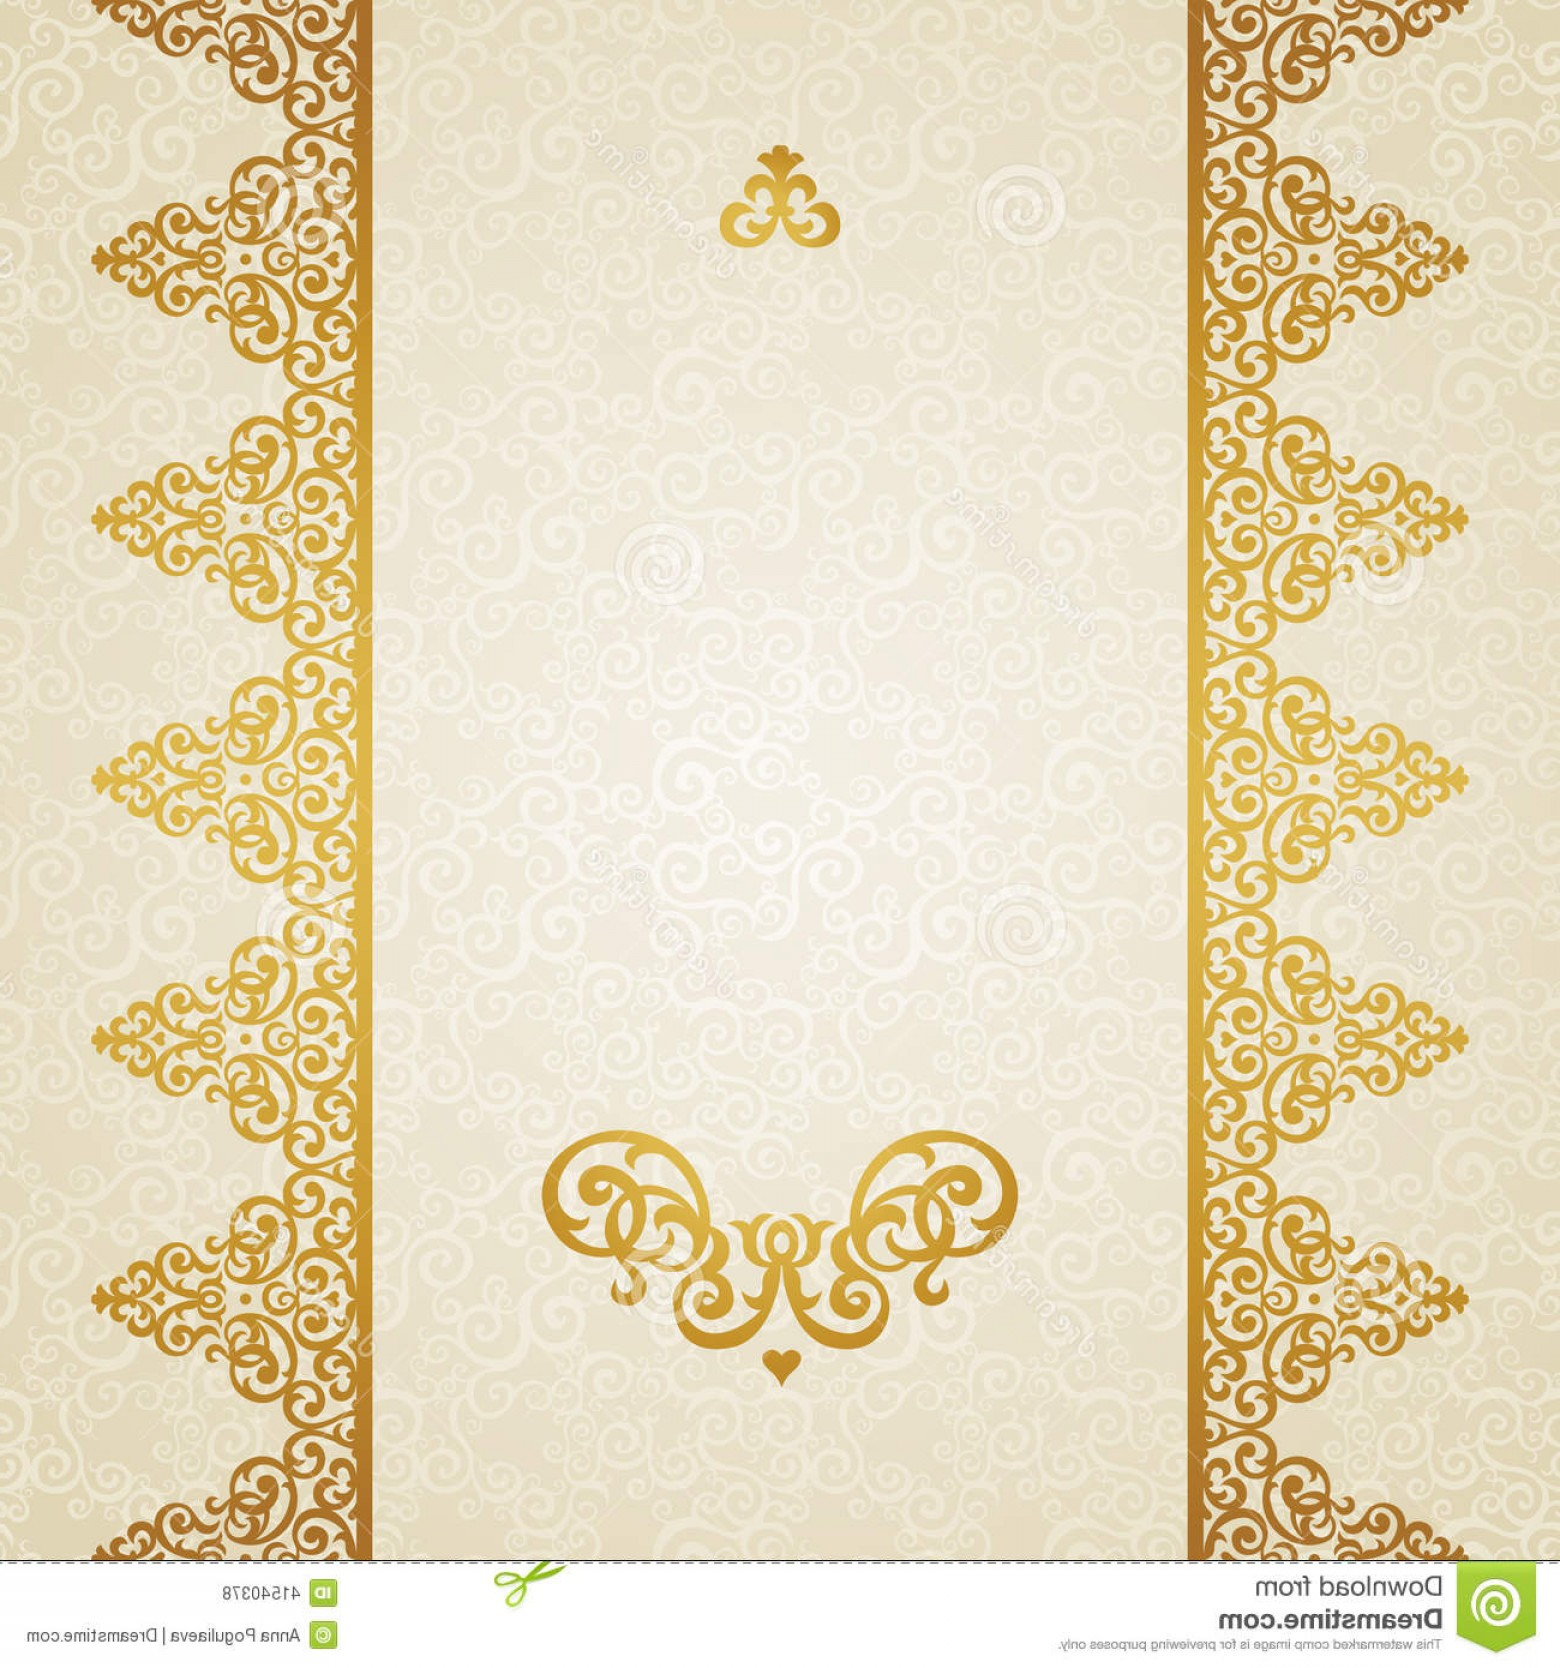 Victorian Style Frame Vector: Stock Illustration Vector Ornate Border Victorian Style Golden Floral Element Design Place Text Ornamental Pattern Wedding Image